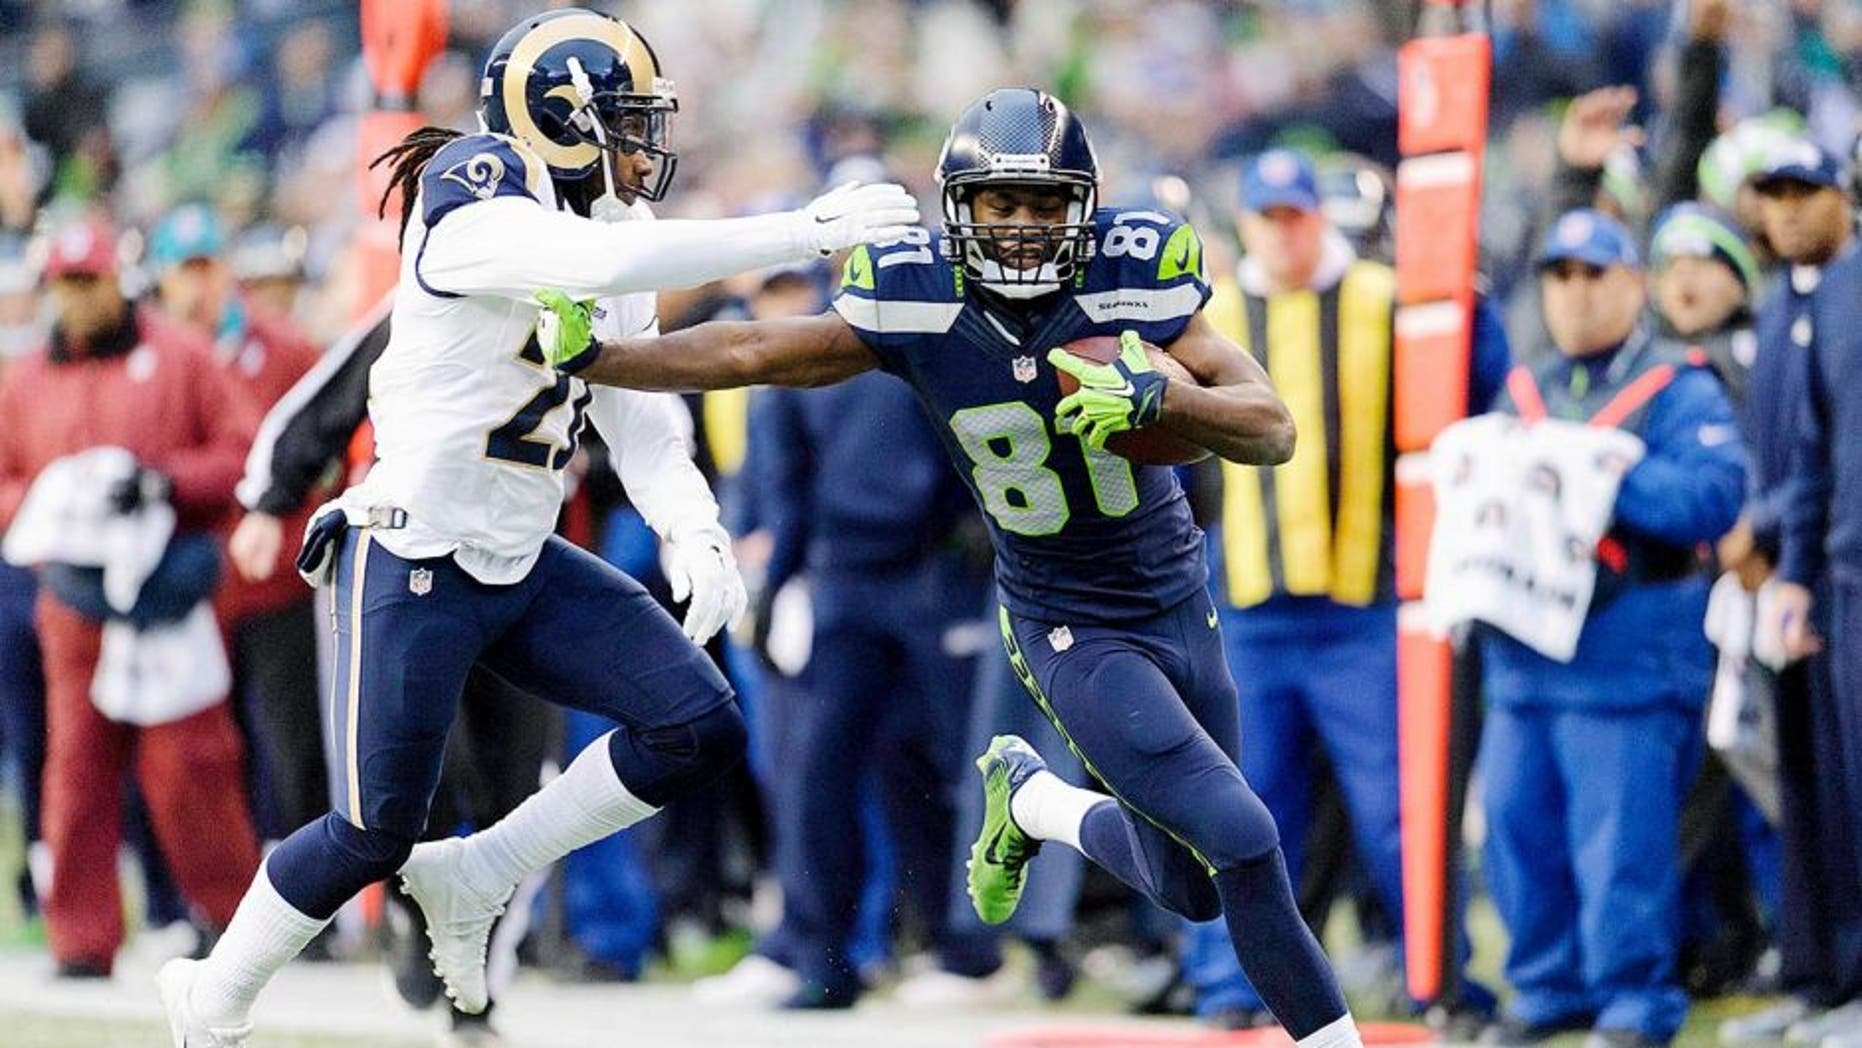 Dec 28, 2014; Seattle, WA, USA; Seattle Seahawks wide receiver Kevin Norwood (81) stiff arms St. Louis Rams cornerback Janoris Jenkins (21) during the second half at CenturyLink Field. Seattle defeated St. Louis 20-6. Mandatory Credit: Steven Bisig-USA TODAY Sports